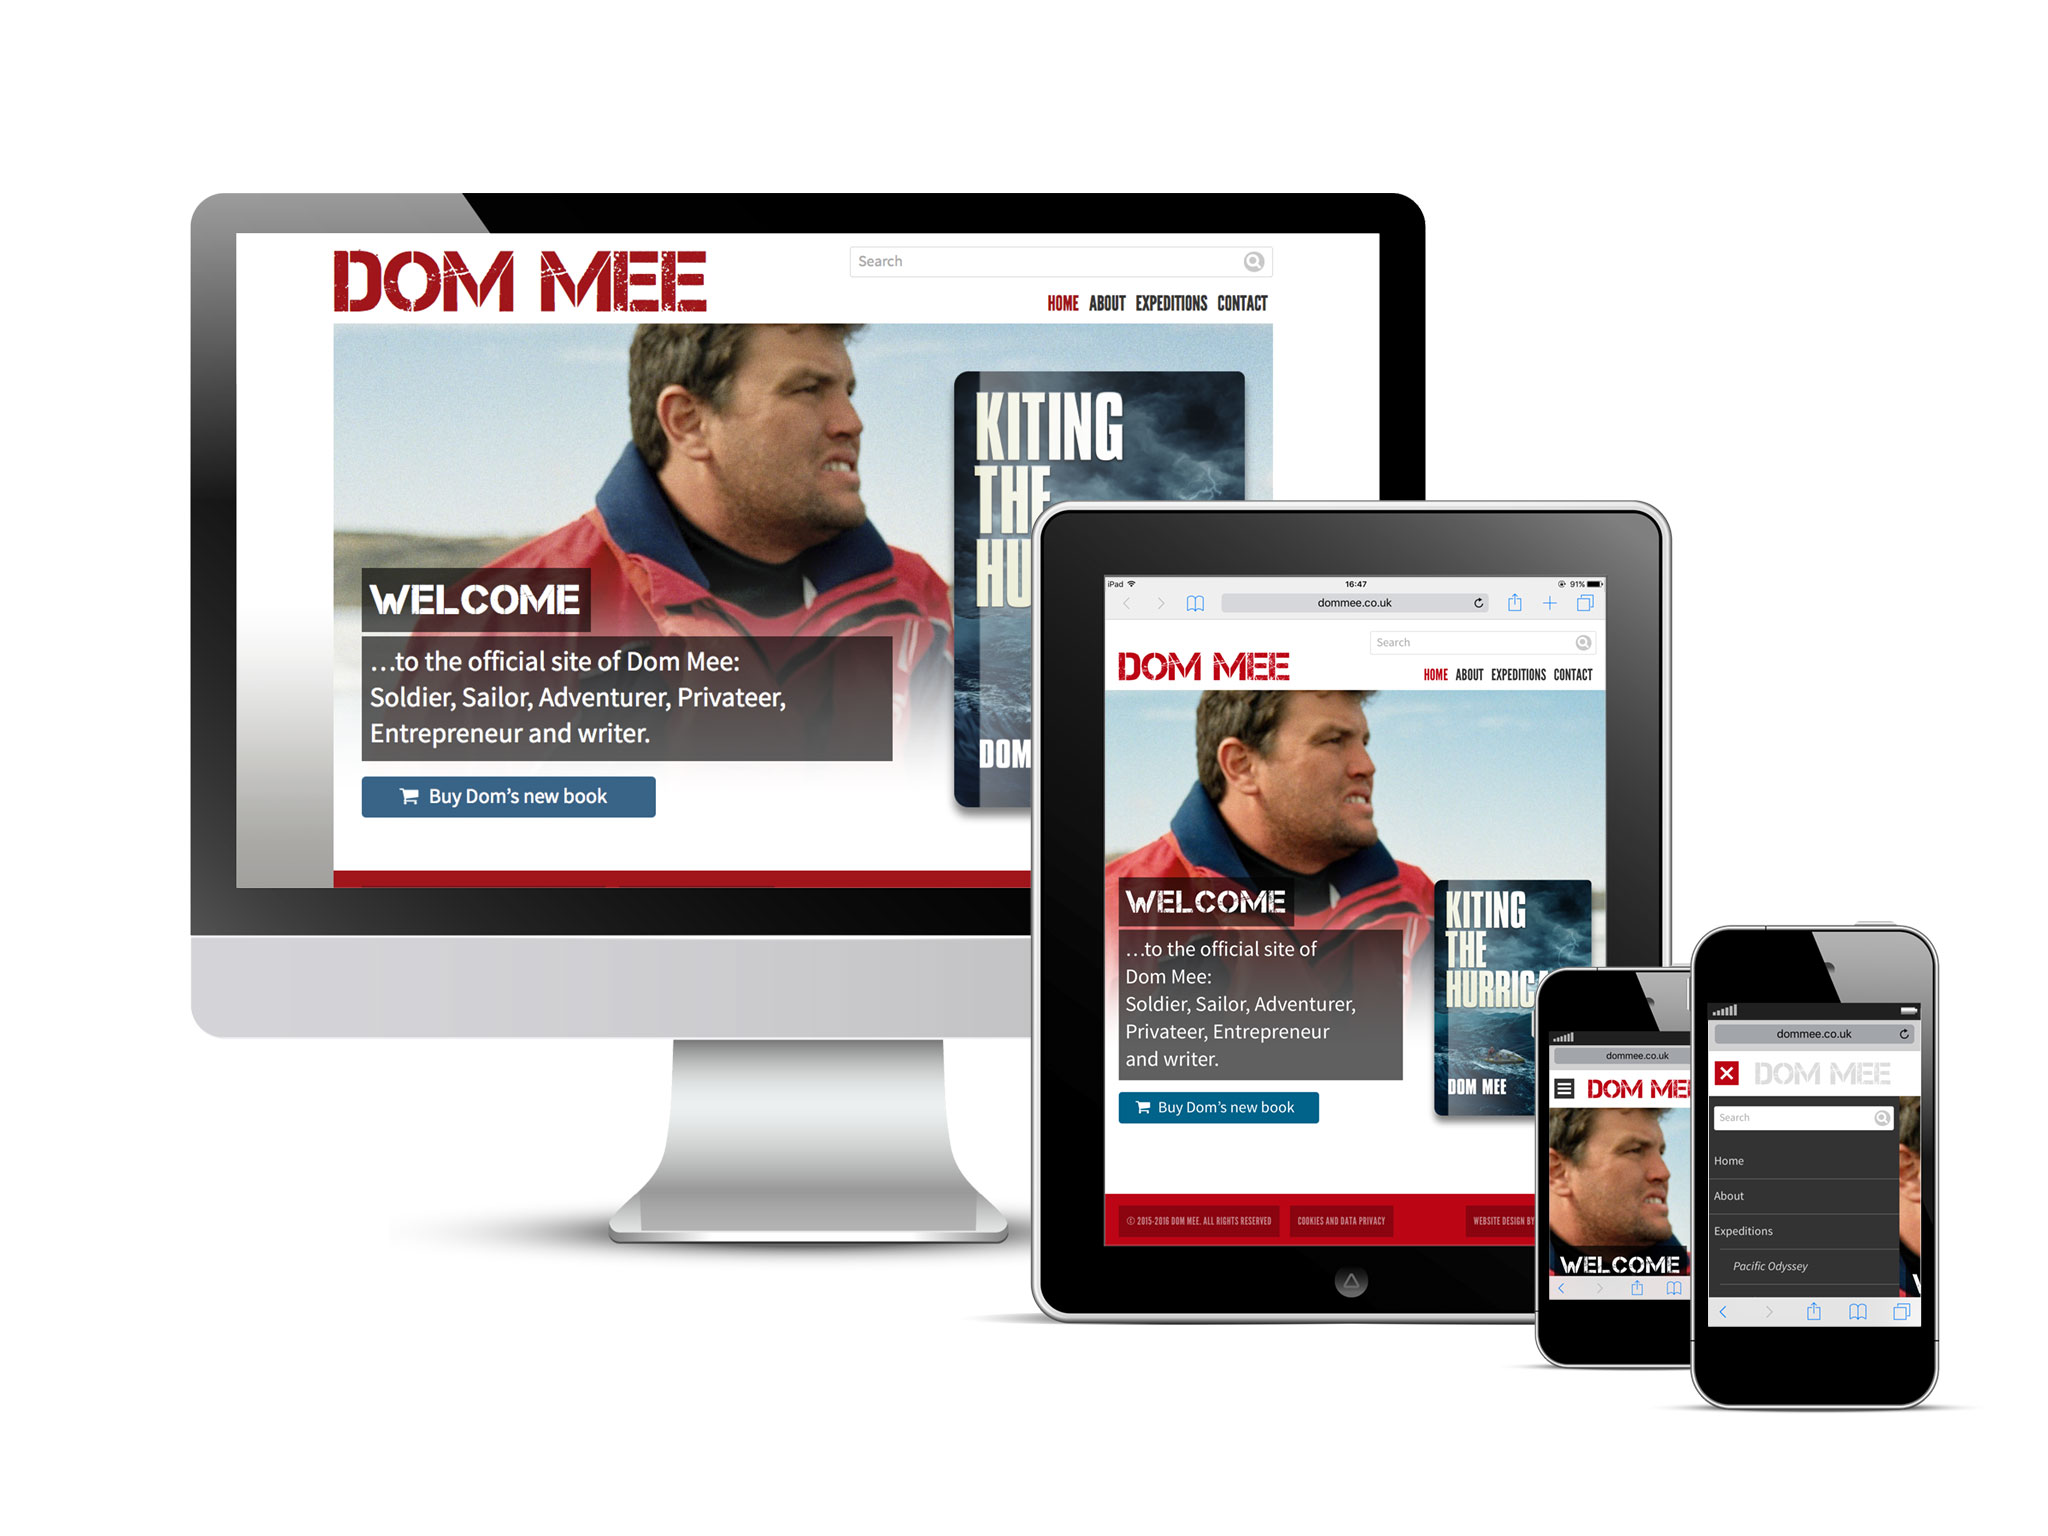 Dom Mee website displayed across multiple devices